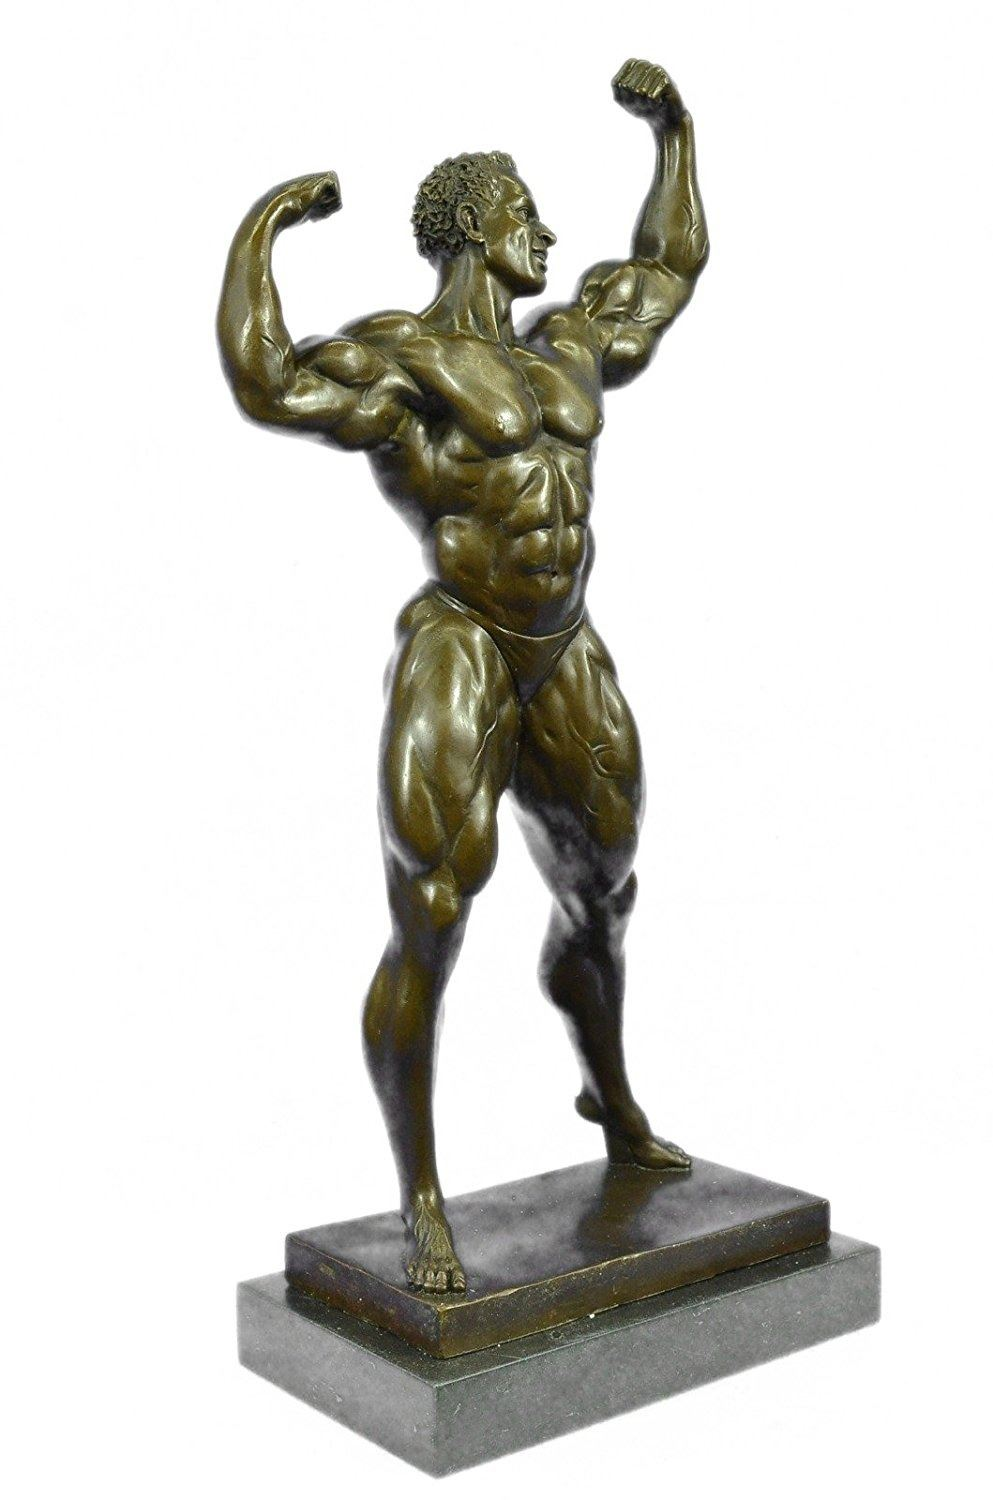 Gay Male Nude Bronze Sculpture on Marble Base Statue